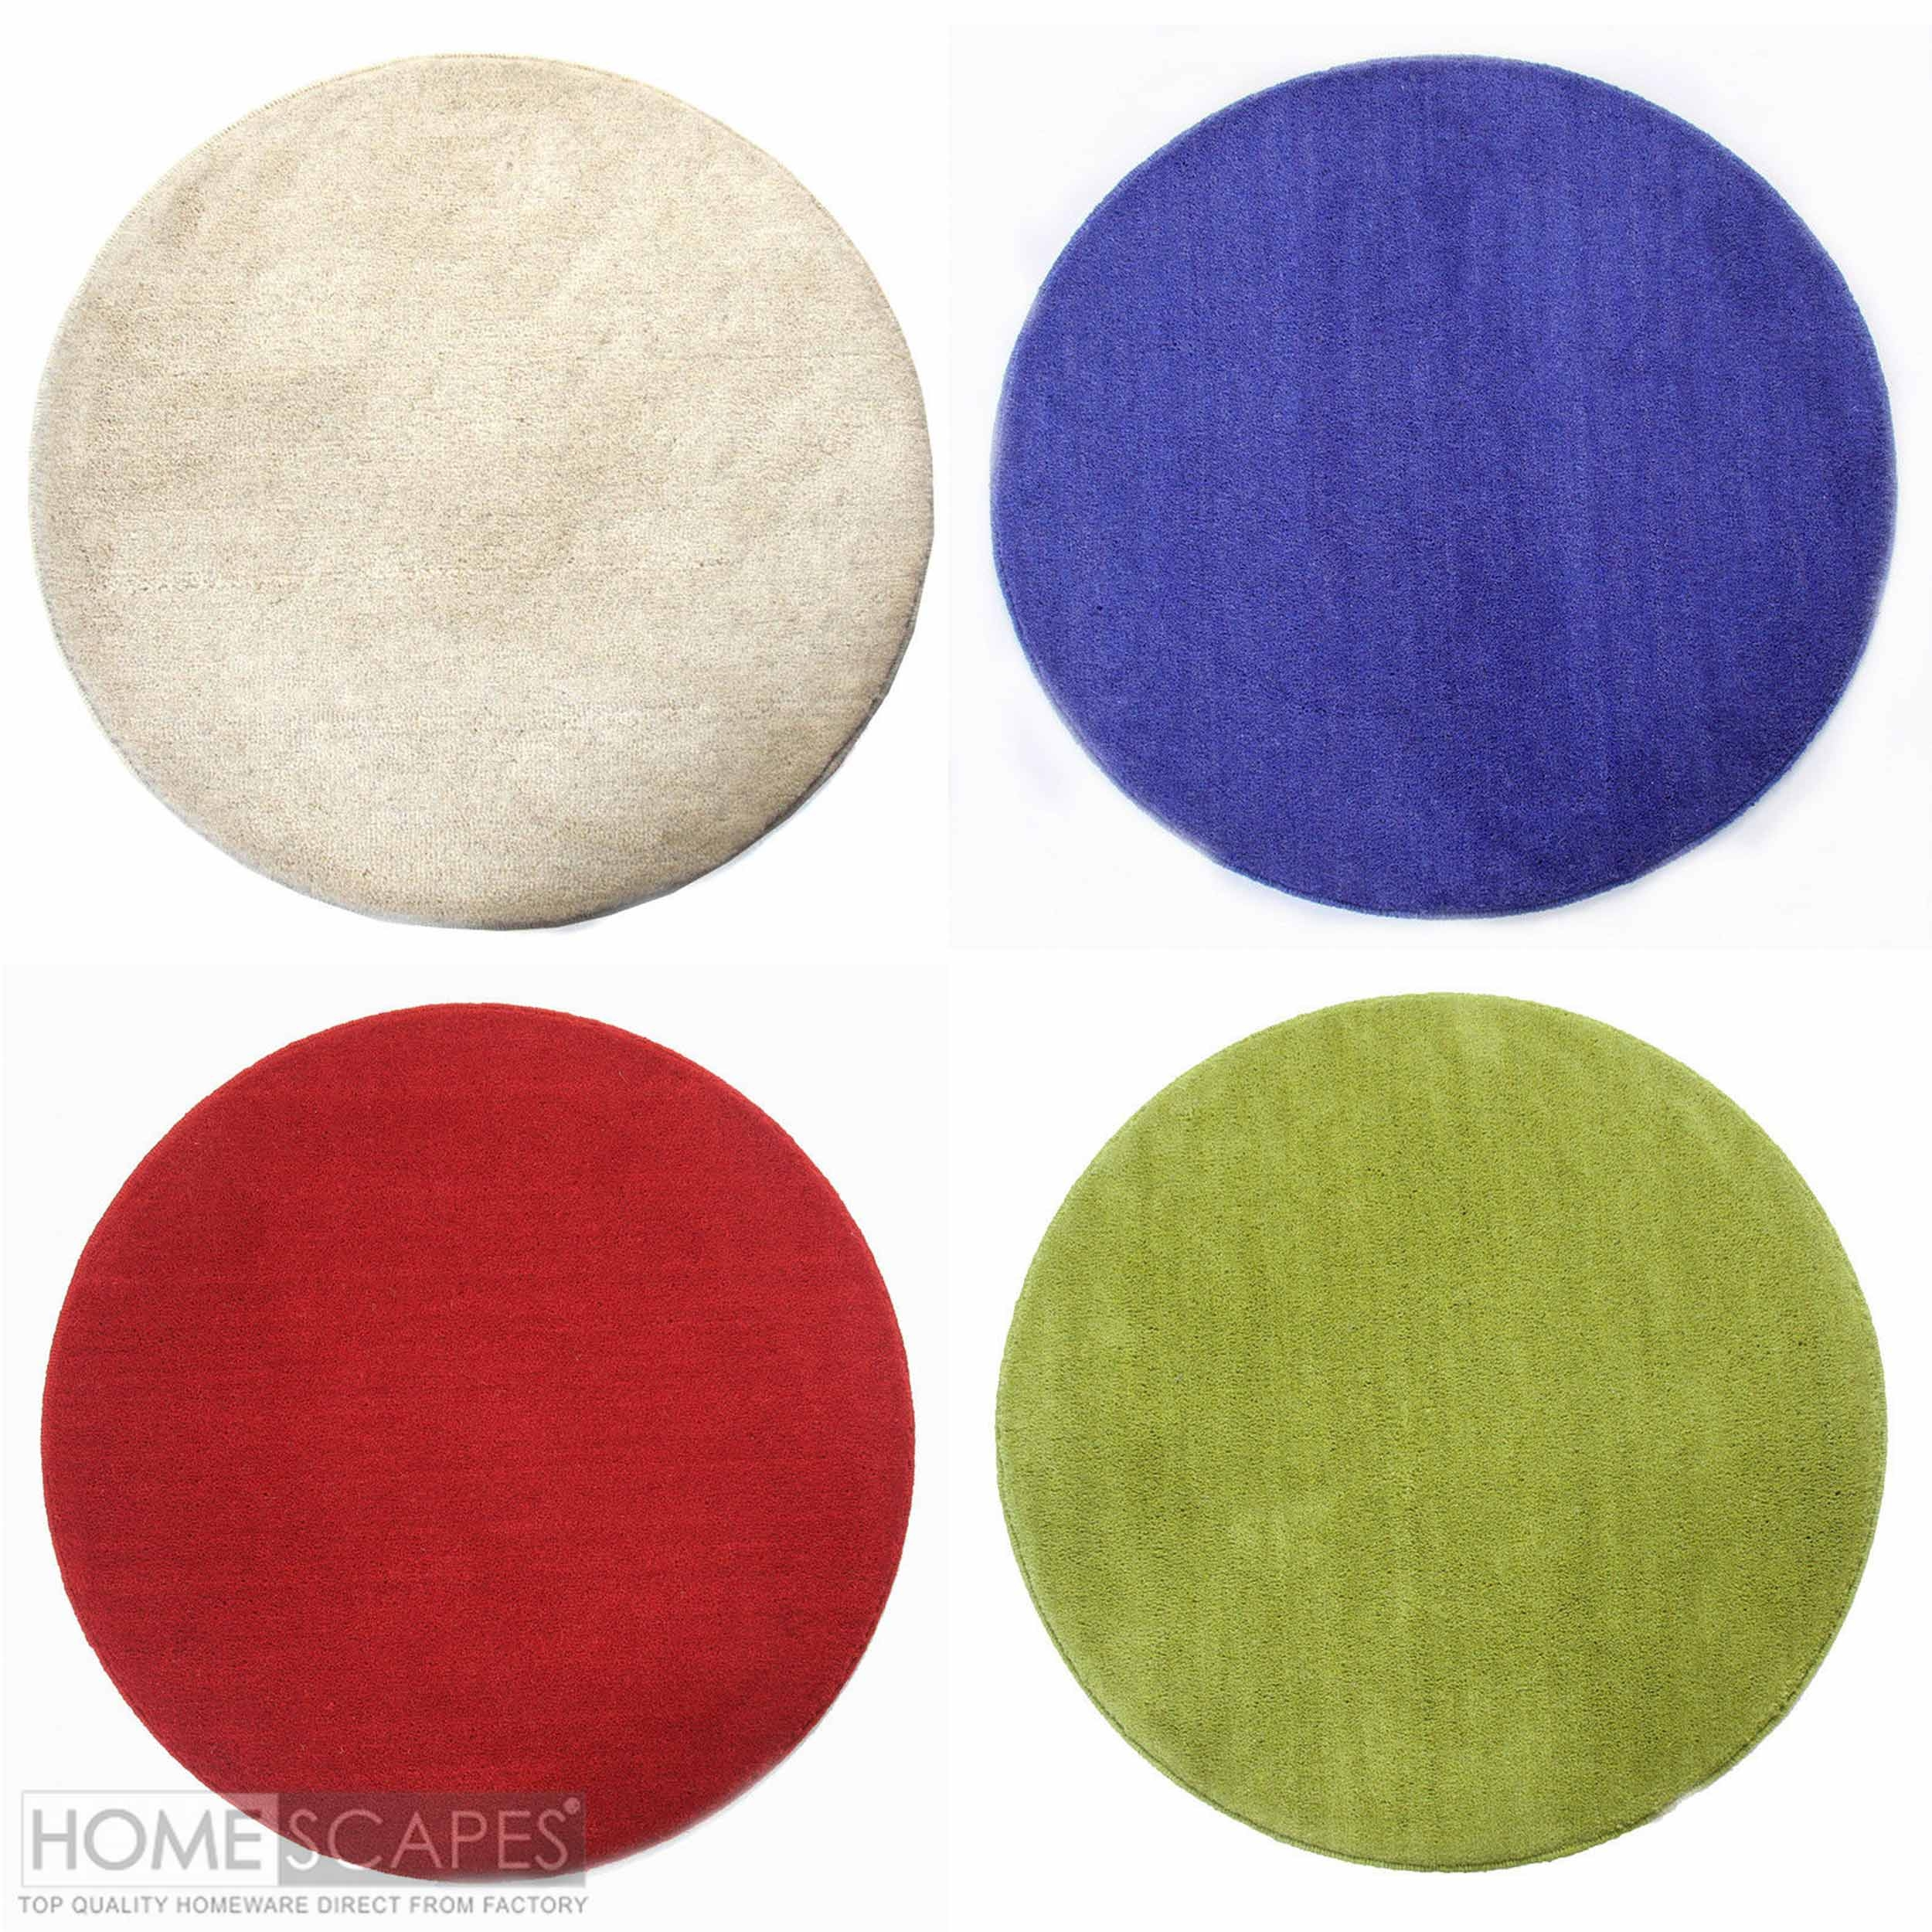 Circular Wool Rugs Roselawnlutheran Regarding Small Wool Rugs (View 8 of 15)